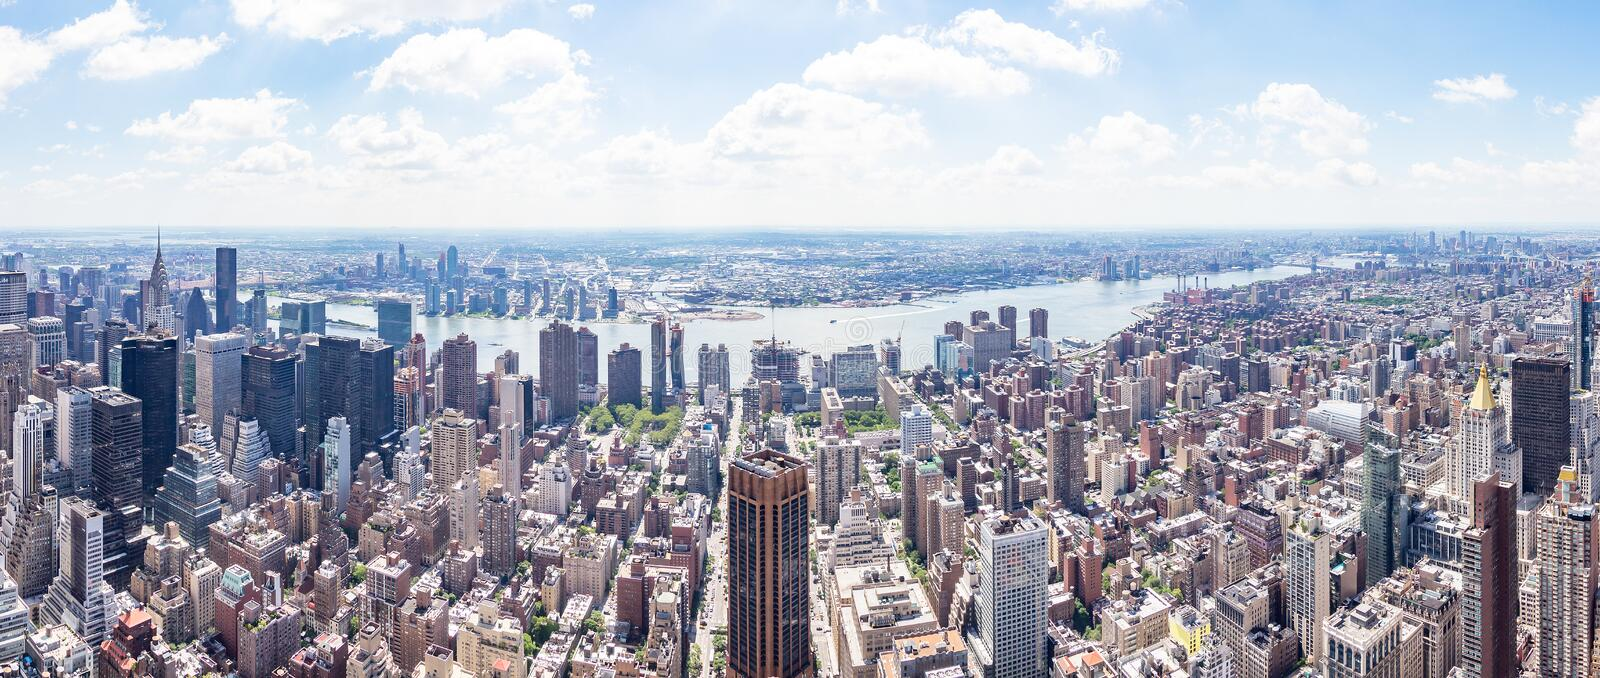 Opinião do panorama da zona leste do Empire State Building com a cidade de East River e de Long Island, New York, Estados Unidos fotos de stock royalty free